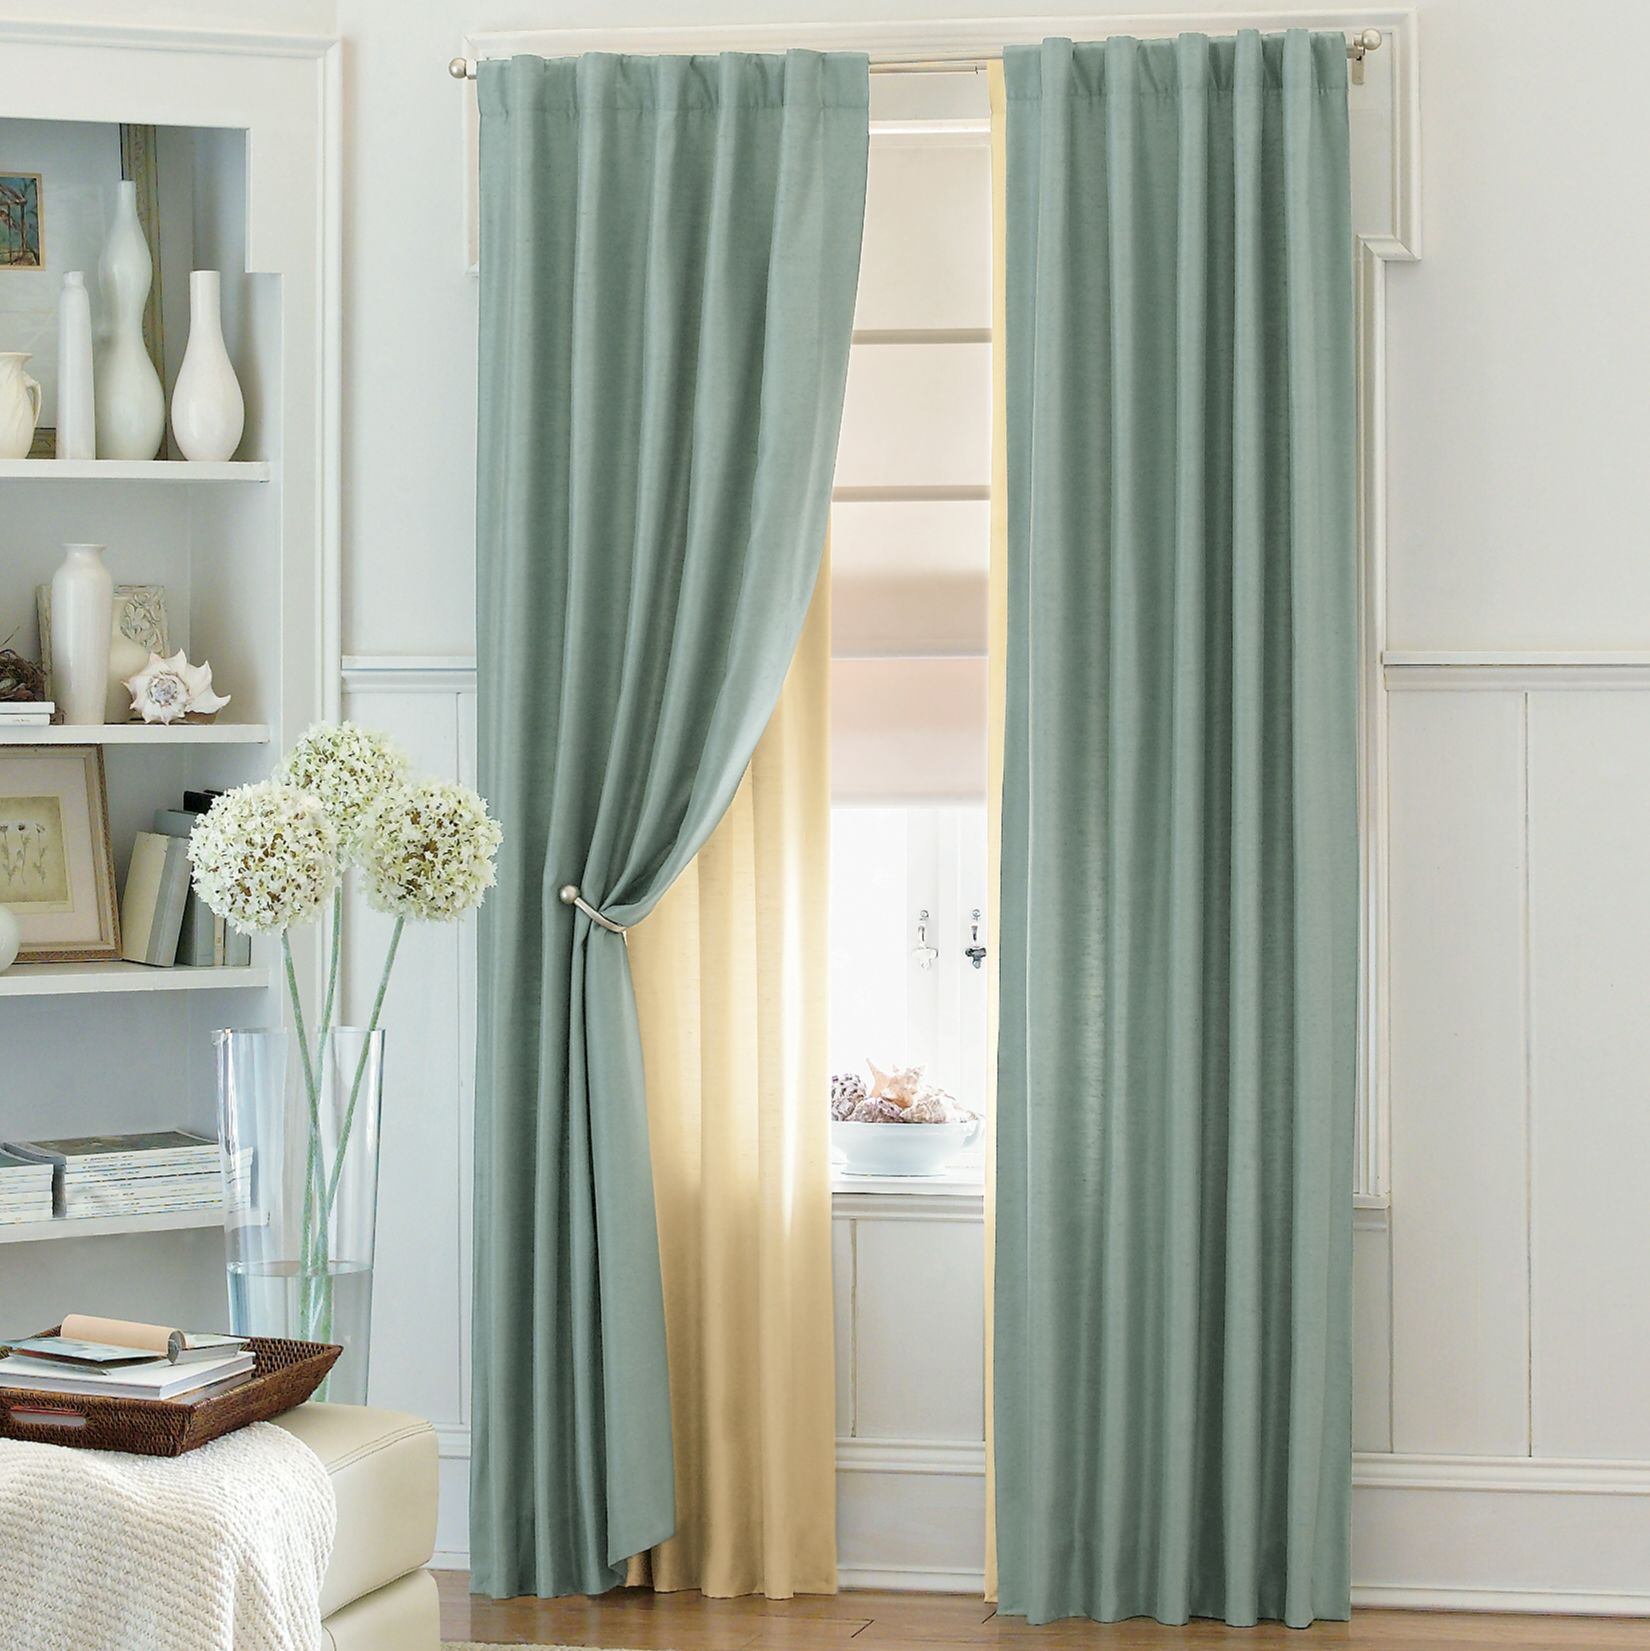 Elegant And Playful Window Treatment For Small Windows